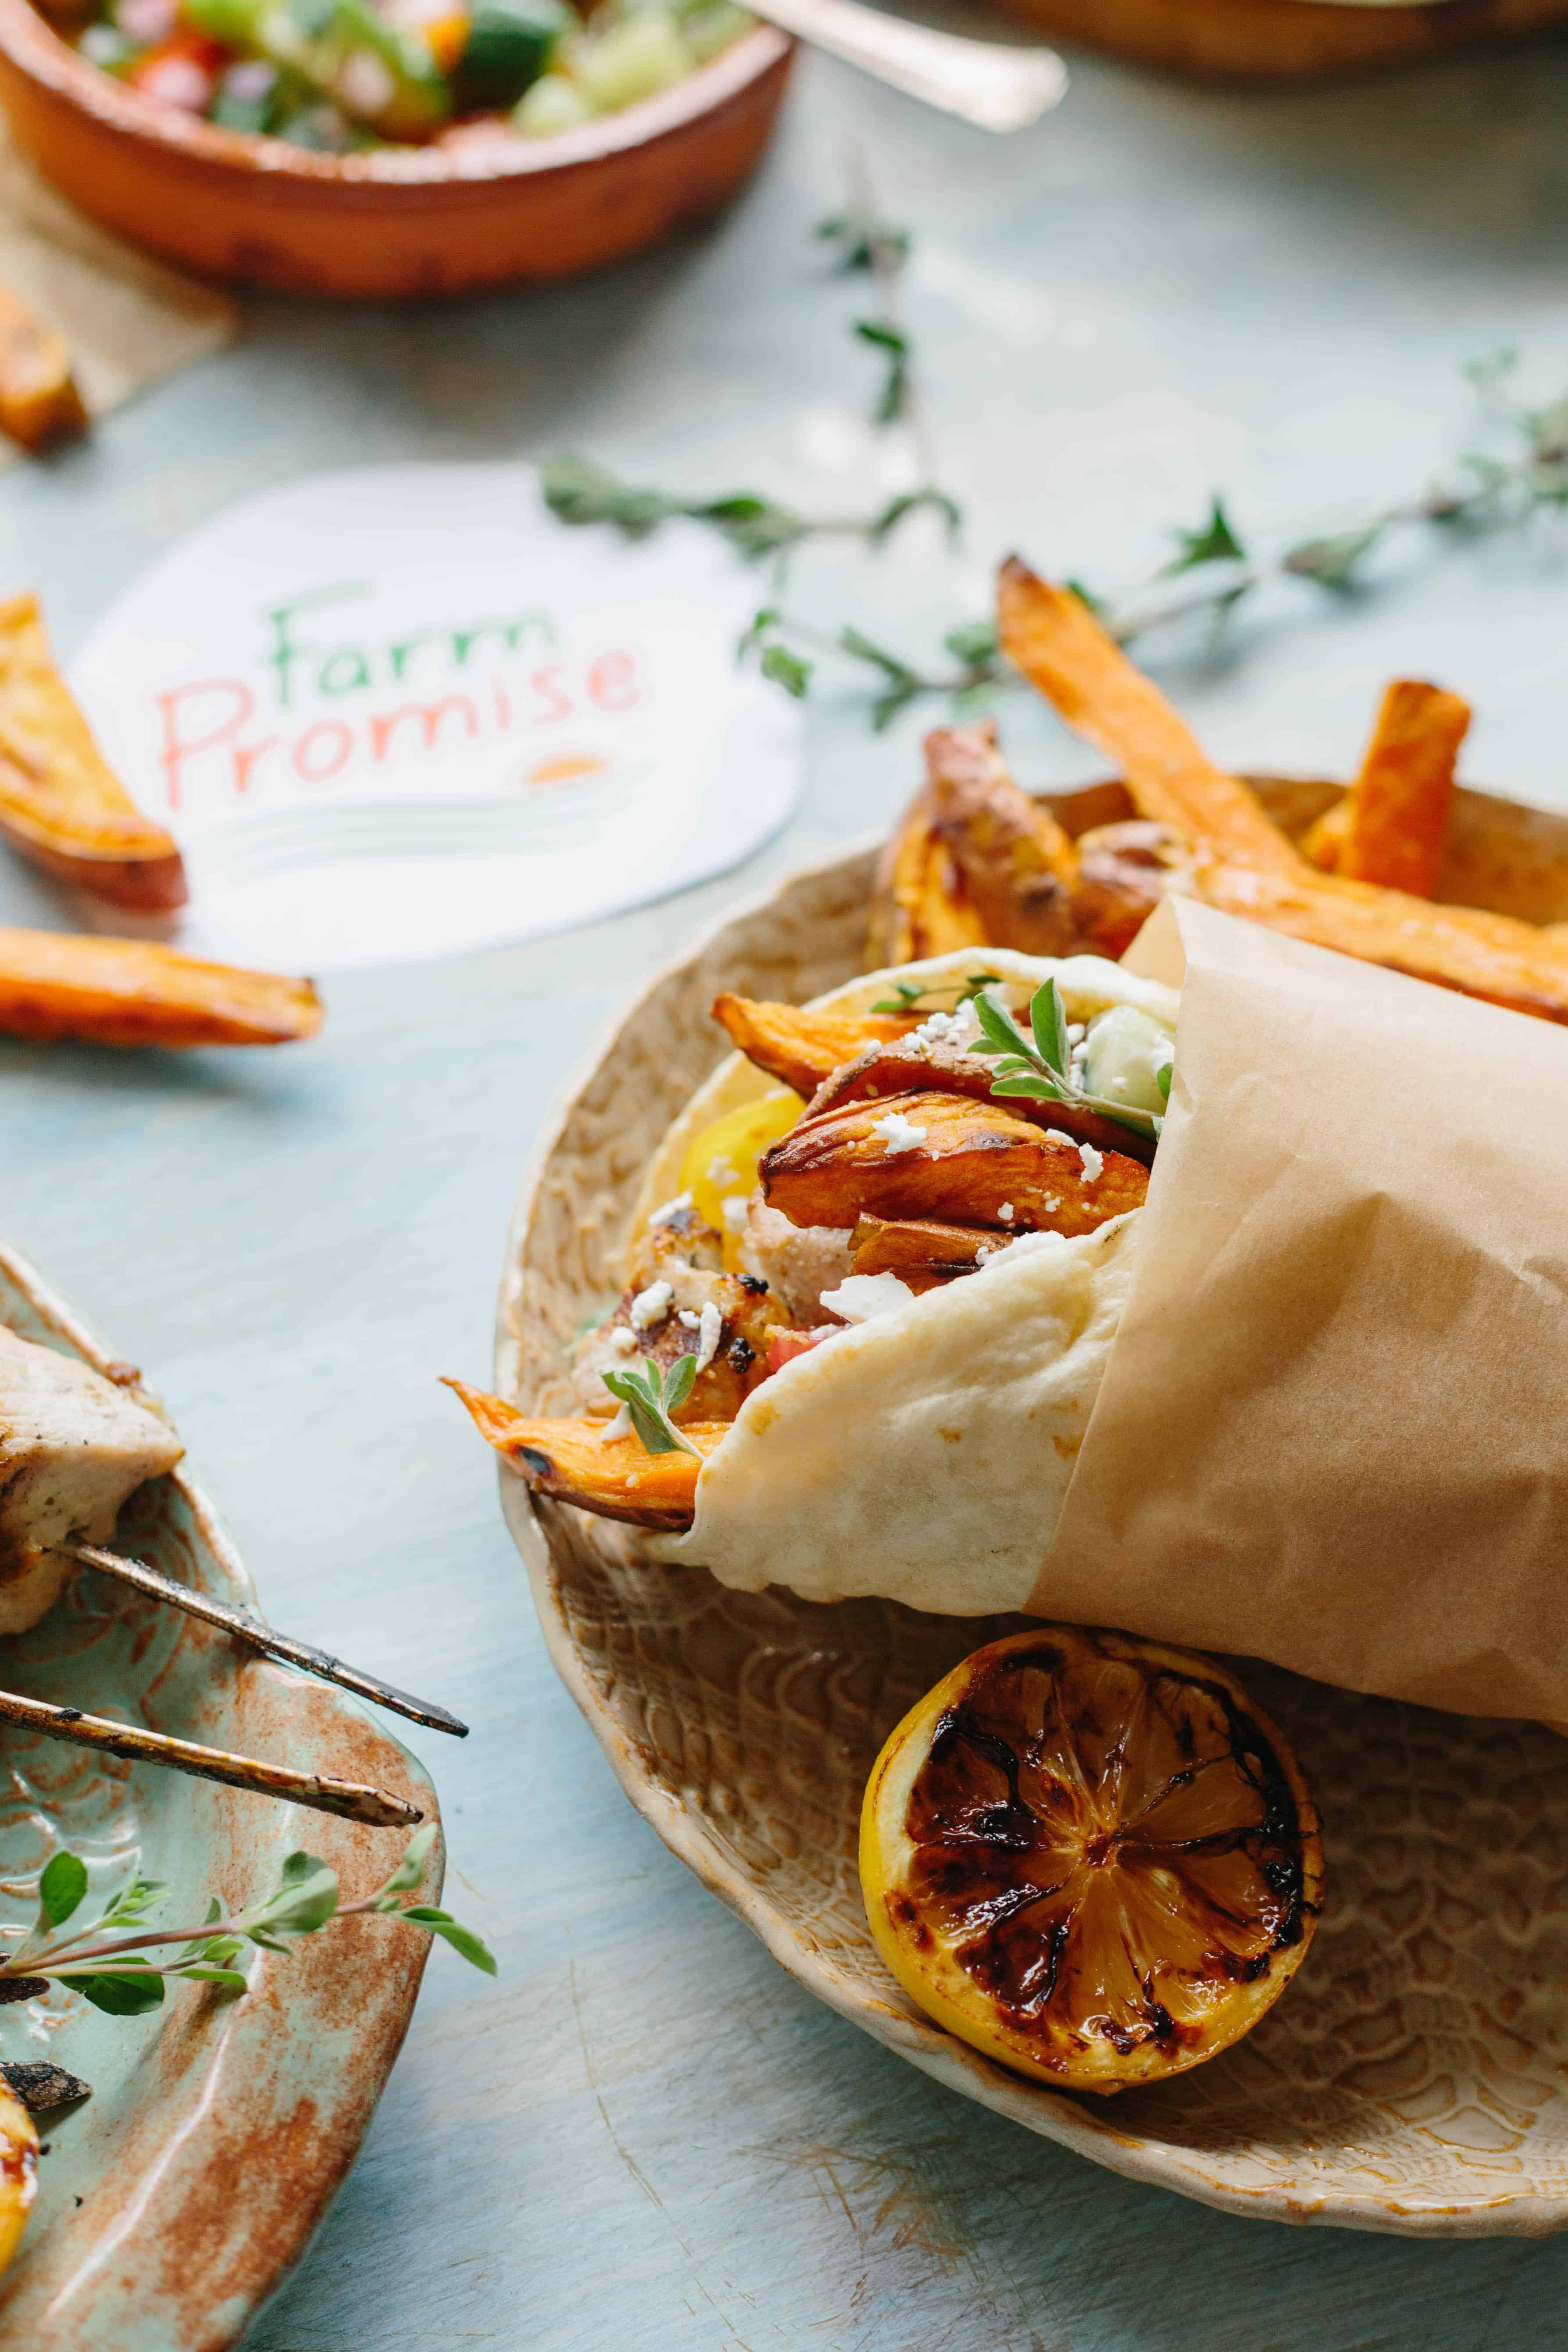 Pork and sweet potatoes wrapped up with salad in a pita.